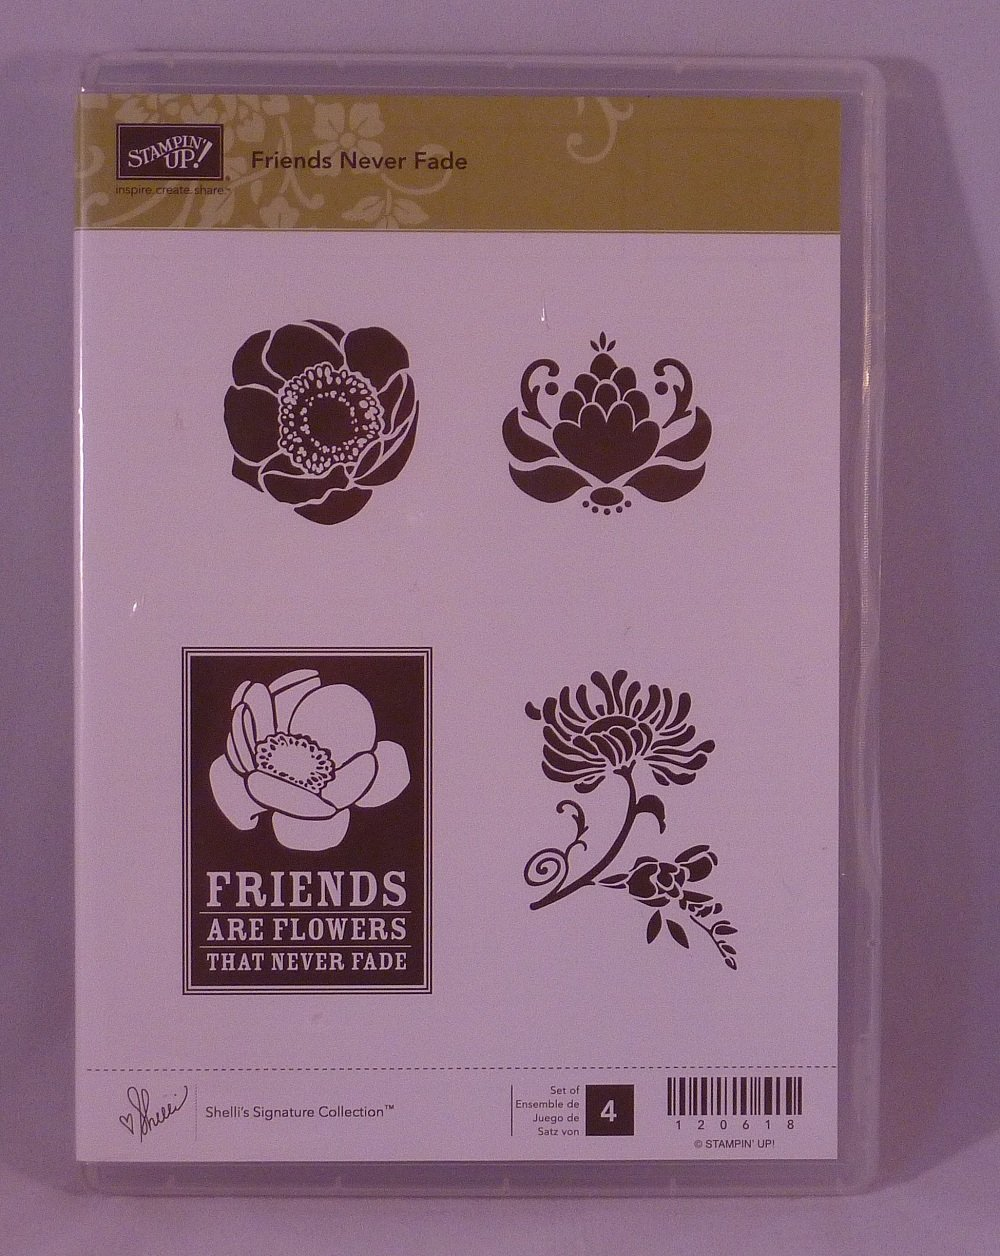 Stampin' Up! FRIENDS NEVER FADE Set of 4 Decorative Rubber Stamps Retired